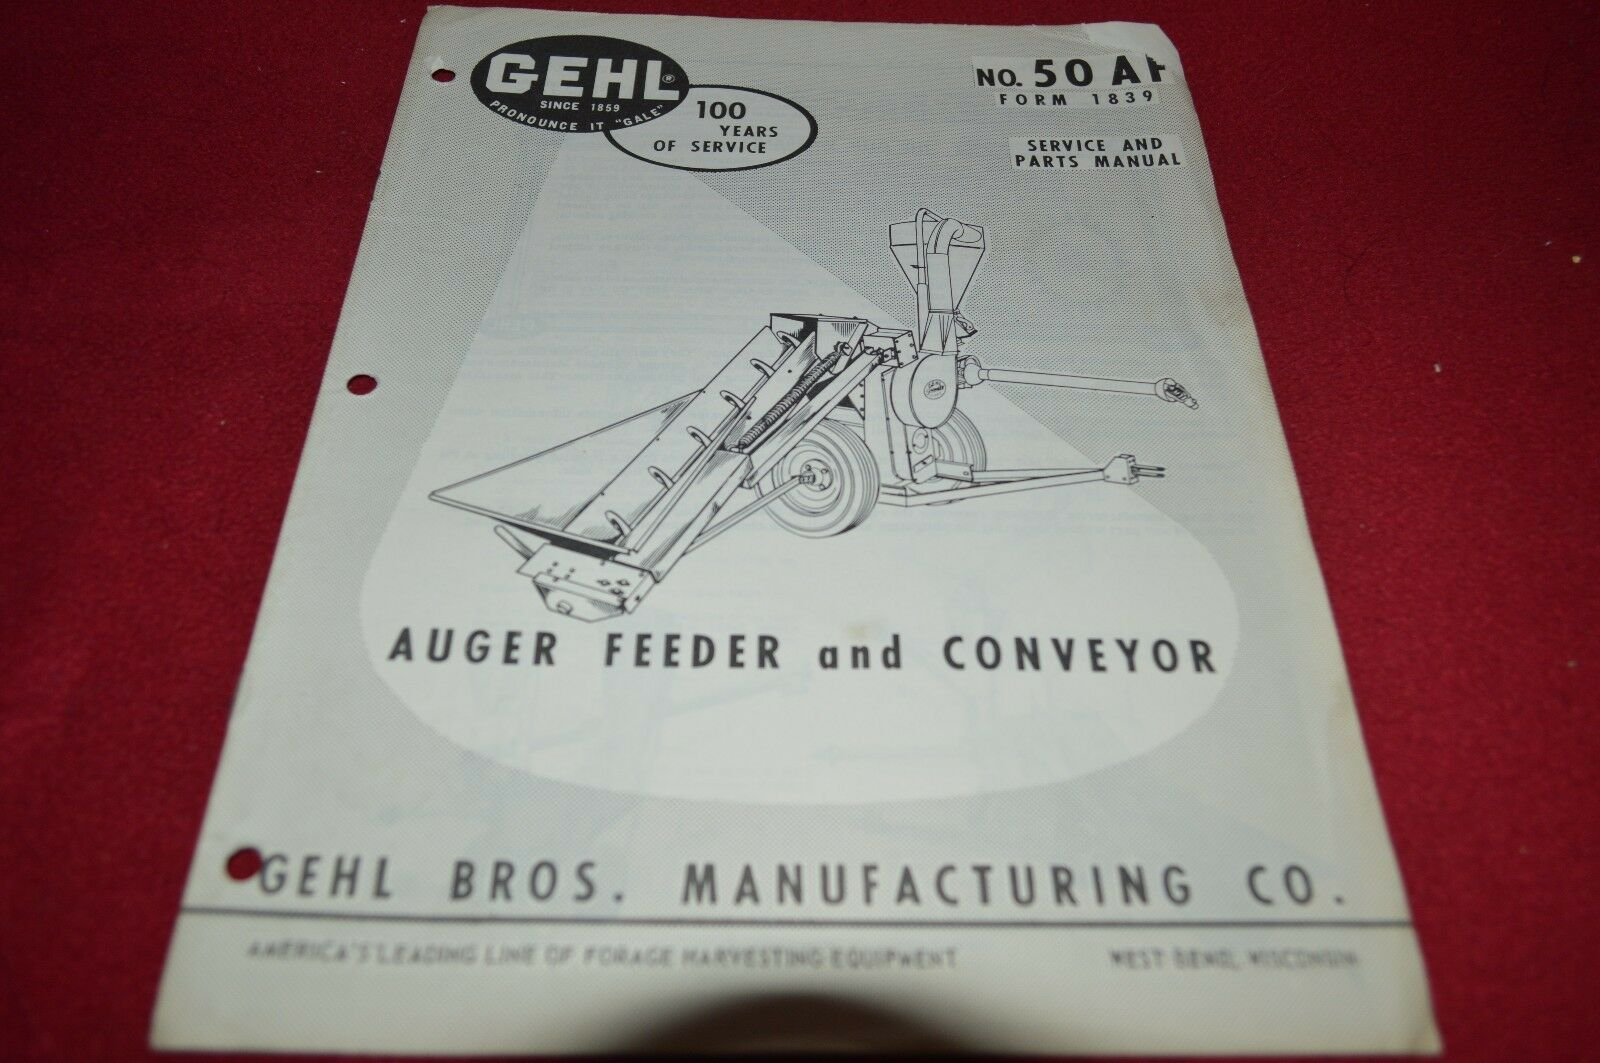 Gehl 50 Hammer Mill Dealer's Parts Book Manual BVPA 1 of 1Only 1 available  ...